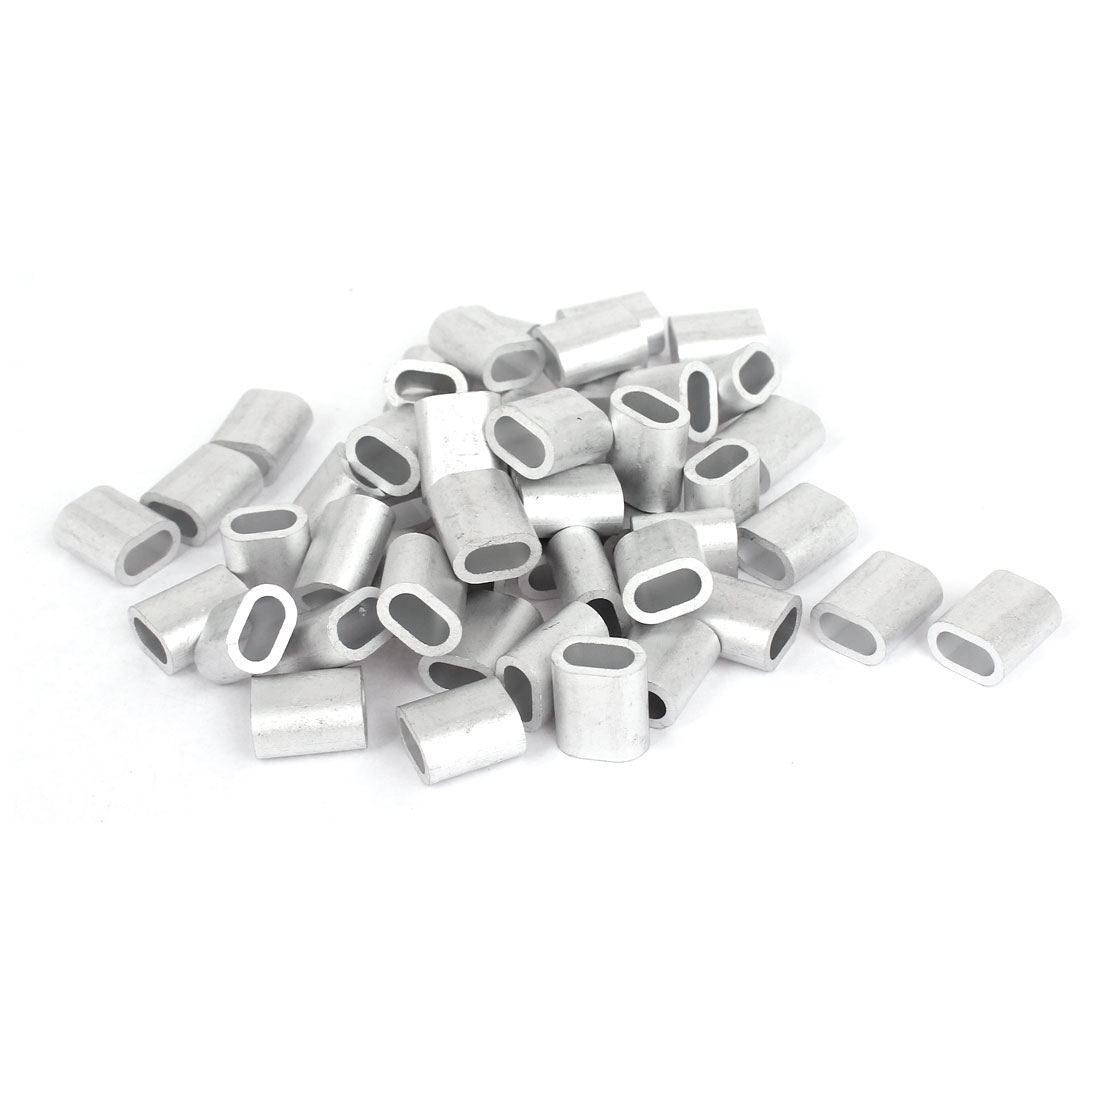 "4mm 5/32"" Steel Wire Rope Aluminum Ferrules Sleeves Silver Tone 50 Pcs"